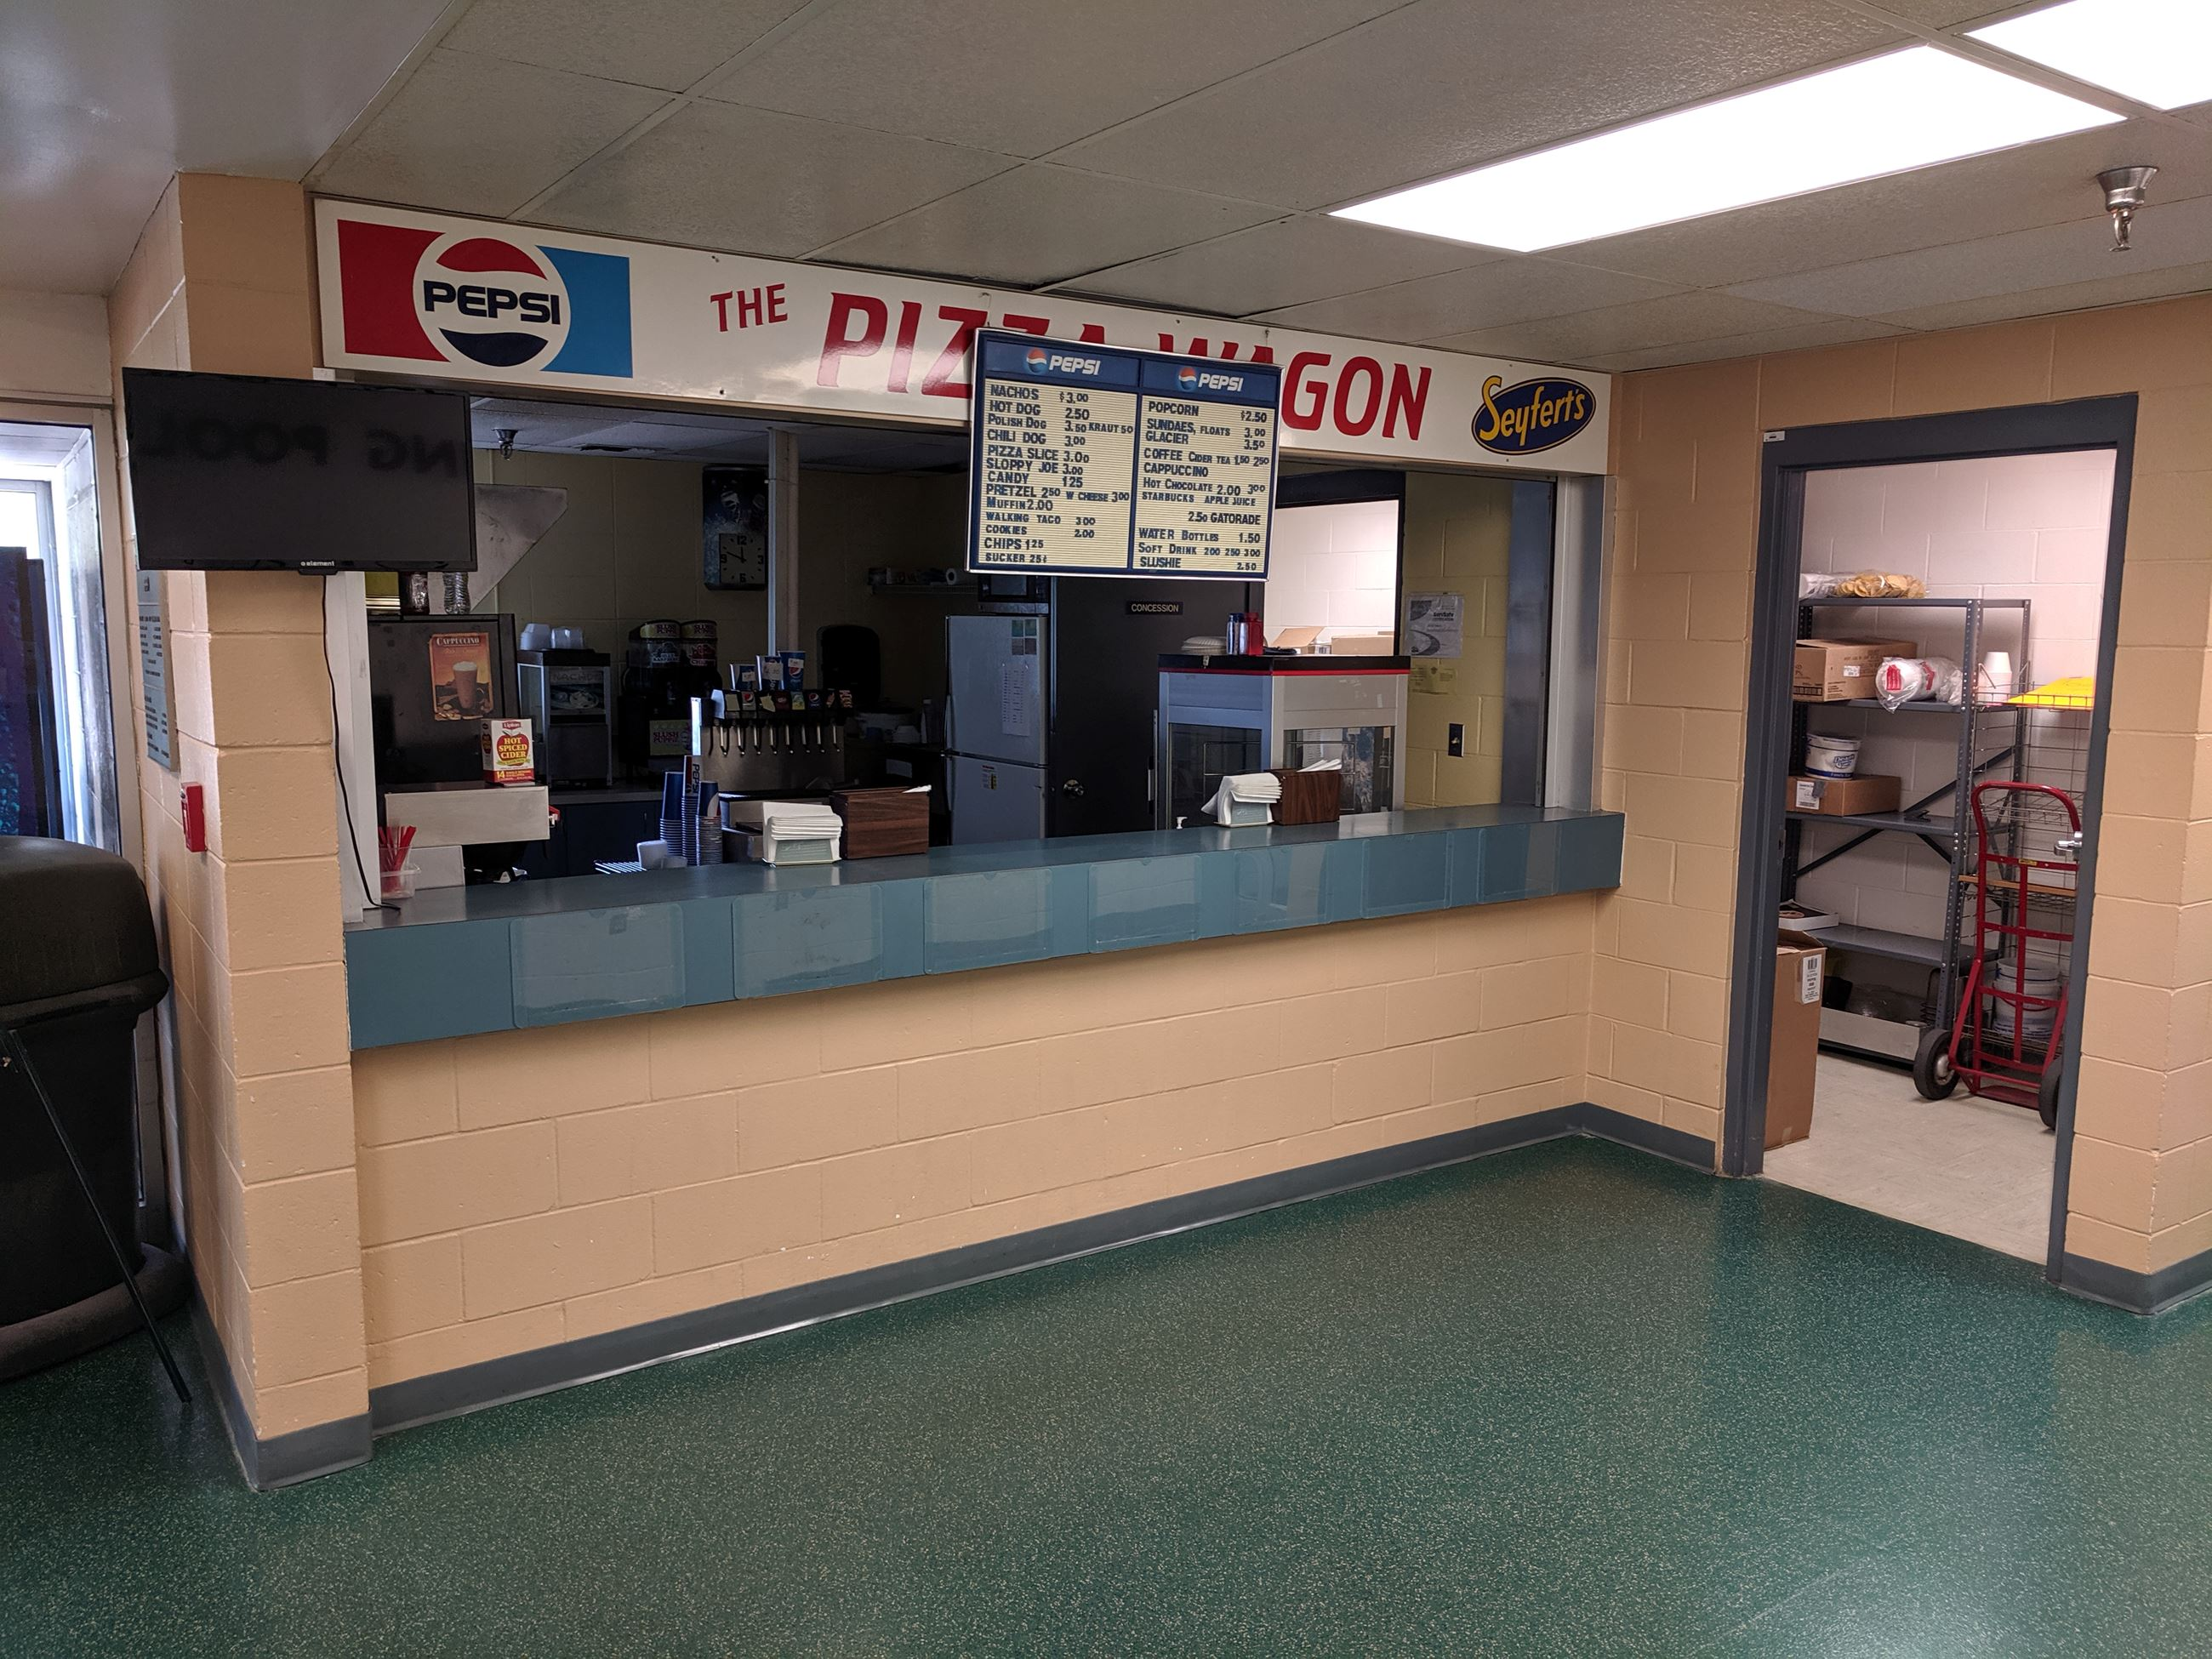 4. Concession Stand Photos for RFP